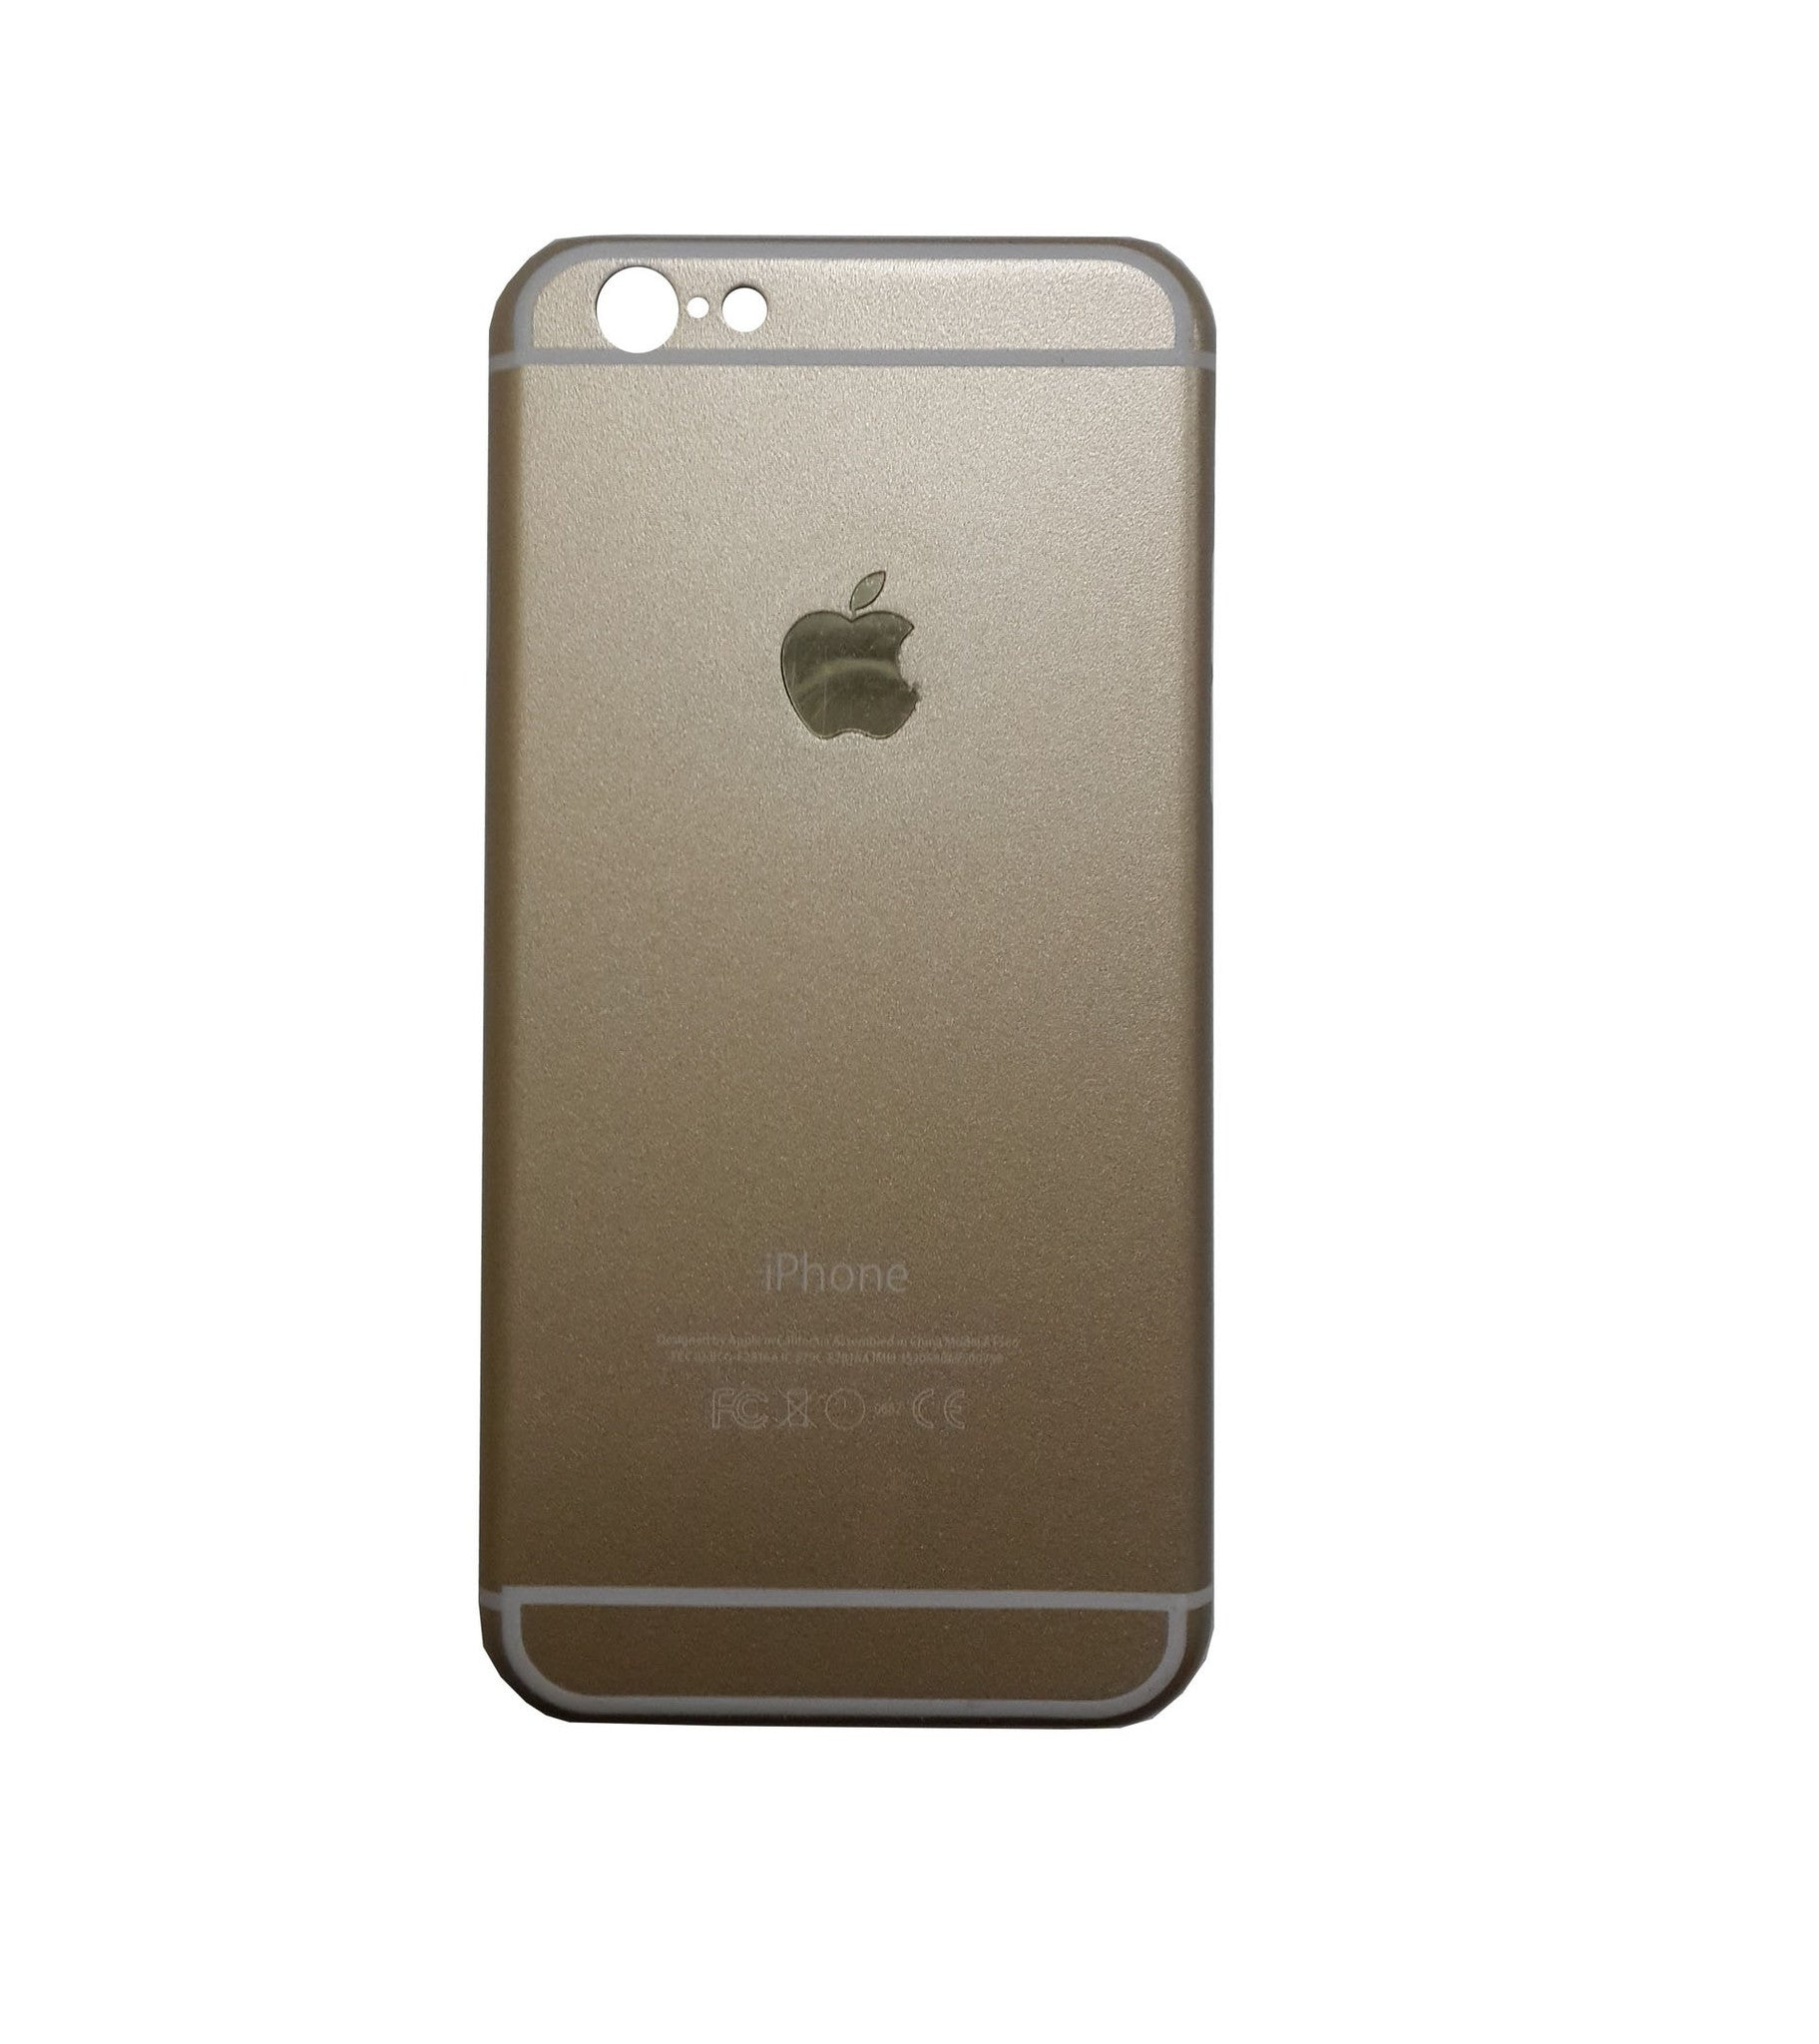 Mettallic Finish Original Design Hard Back Case Cover for iPhone 5 5S - Gold - Mobizang